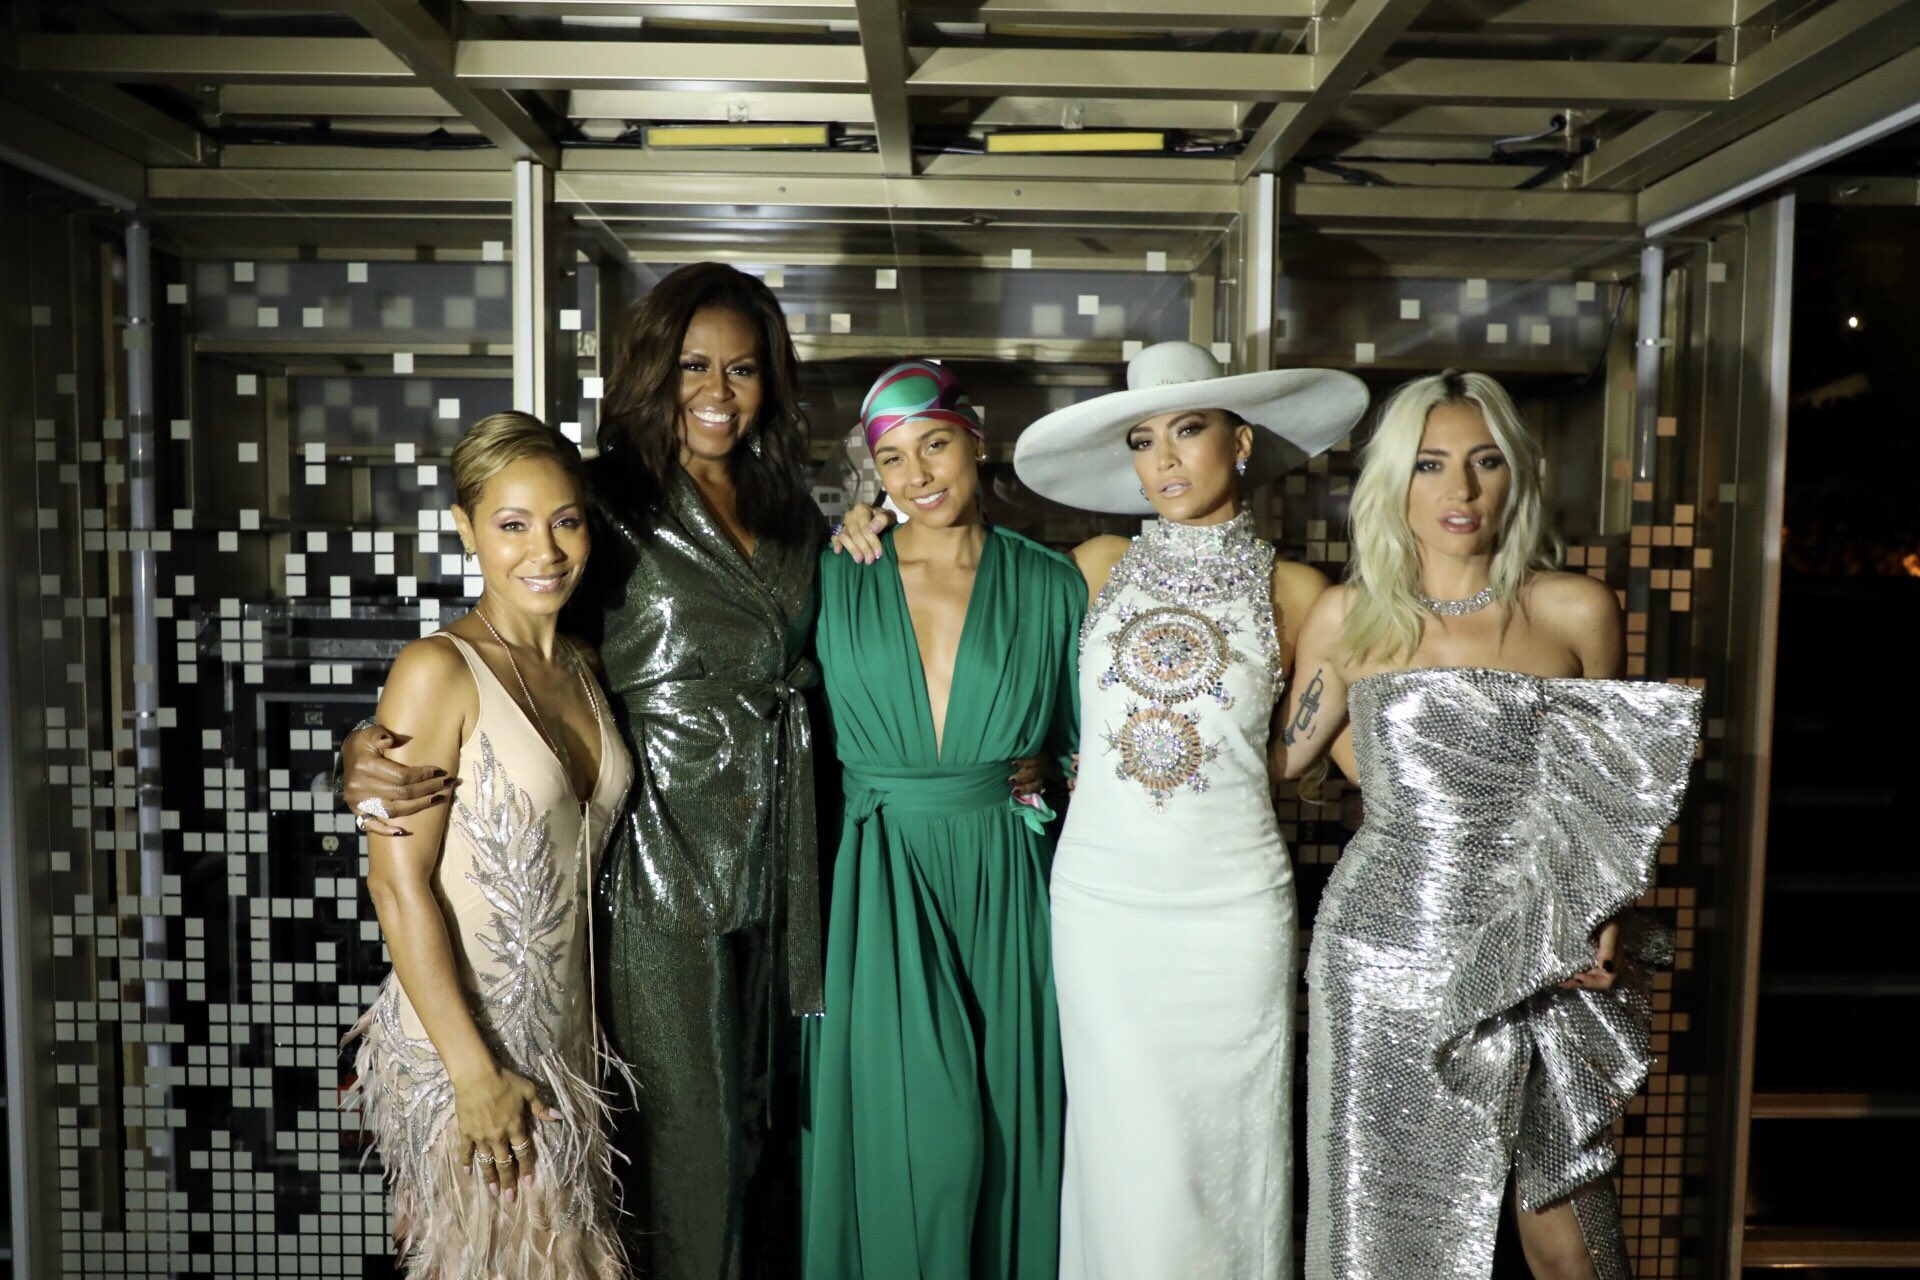 Michelle Obama @MichelleObama A big part of friendship is showing up for your girls—that's why I was thrilled to be there for the one and only @aliciakeys at the #GRAMMYs. She is one of the most genuine and thoughtful people I know—there's no one better to help us all celebrate the unifying power of music!